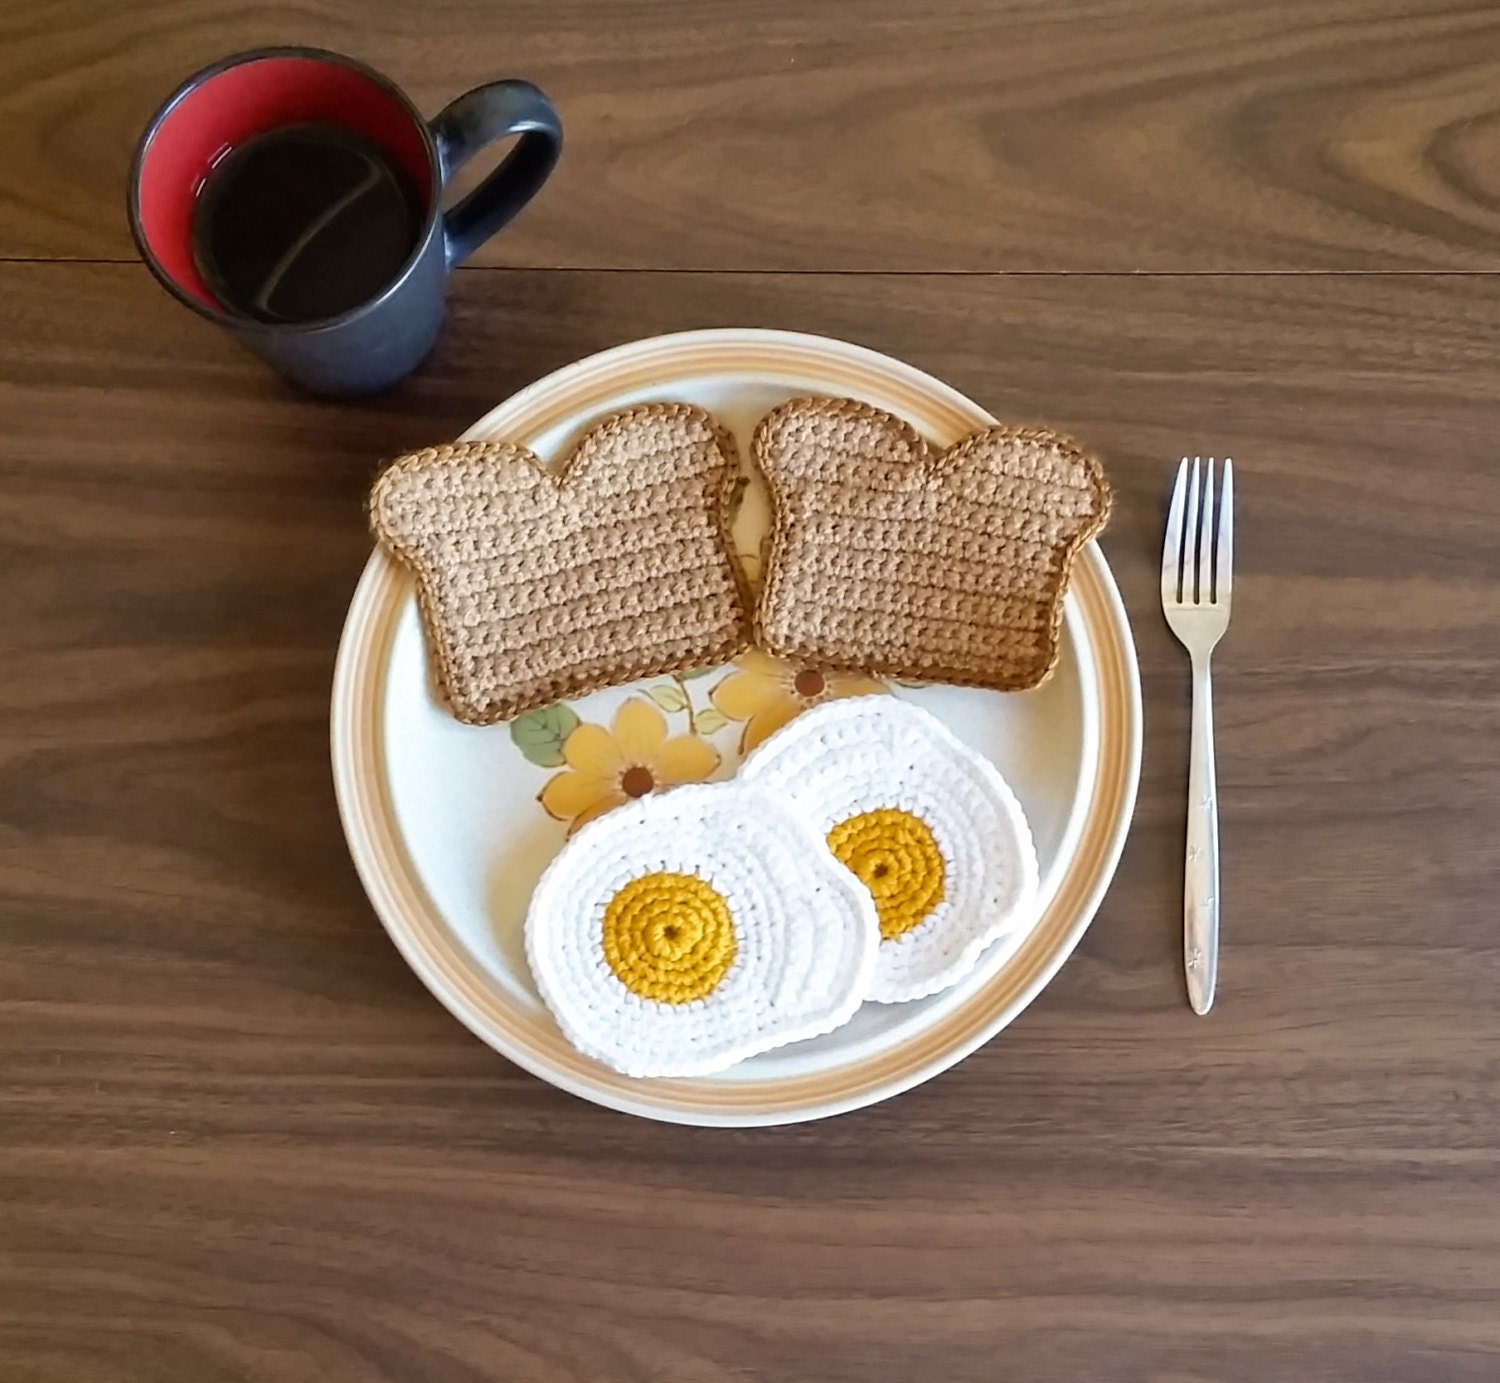 Toast and Egg Coaster Set